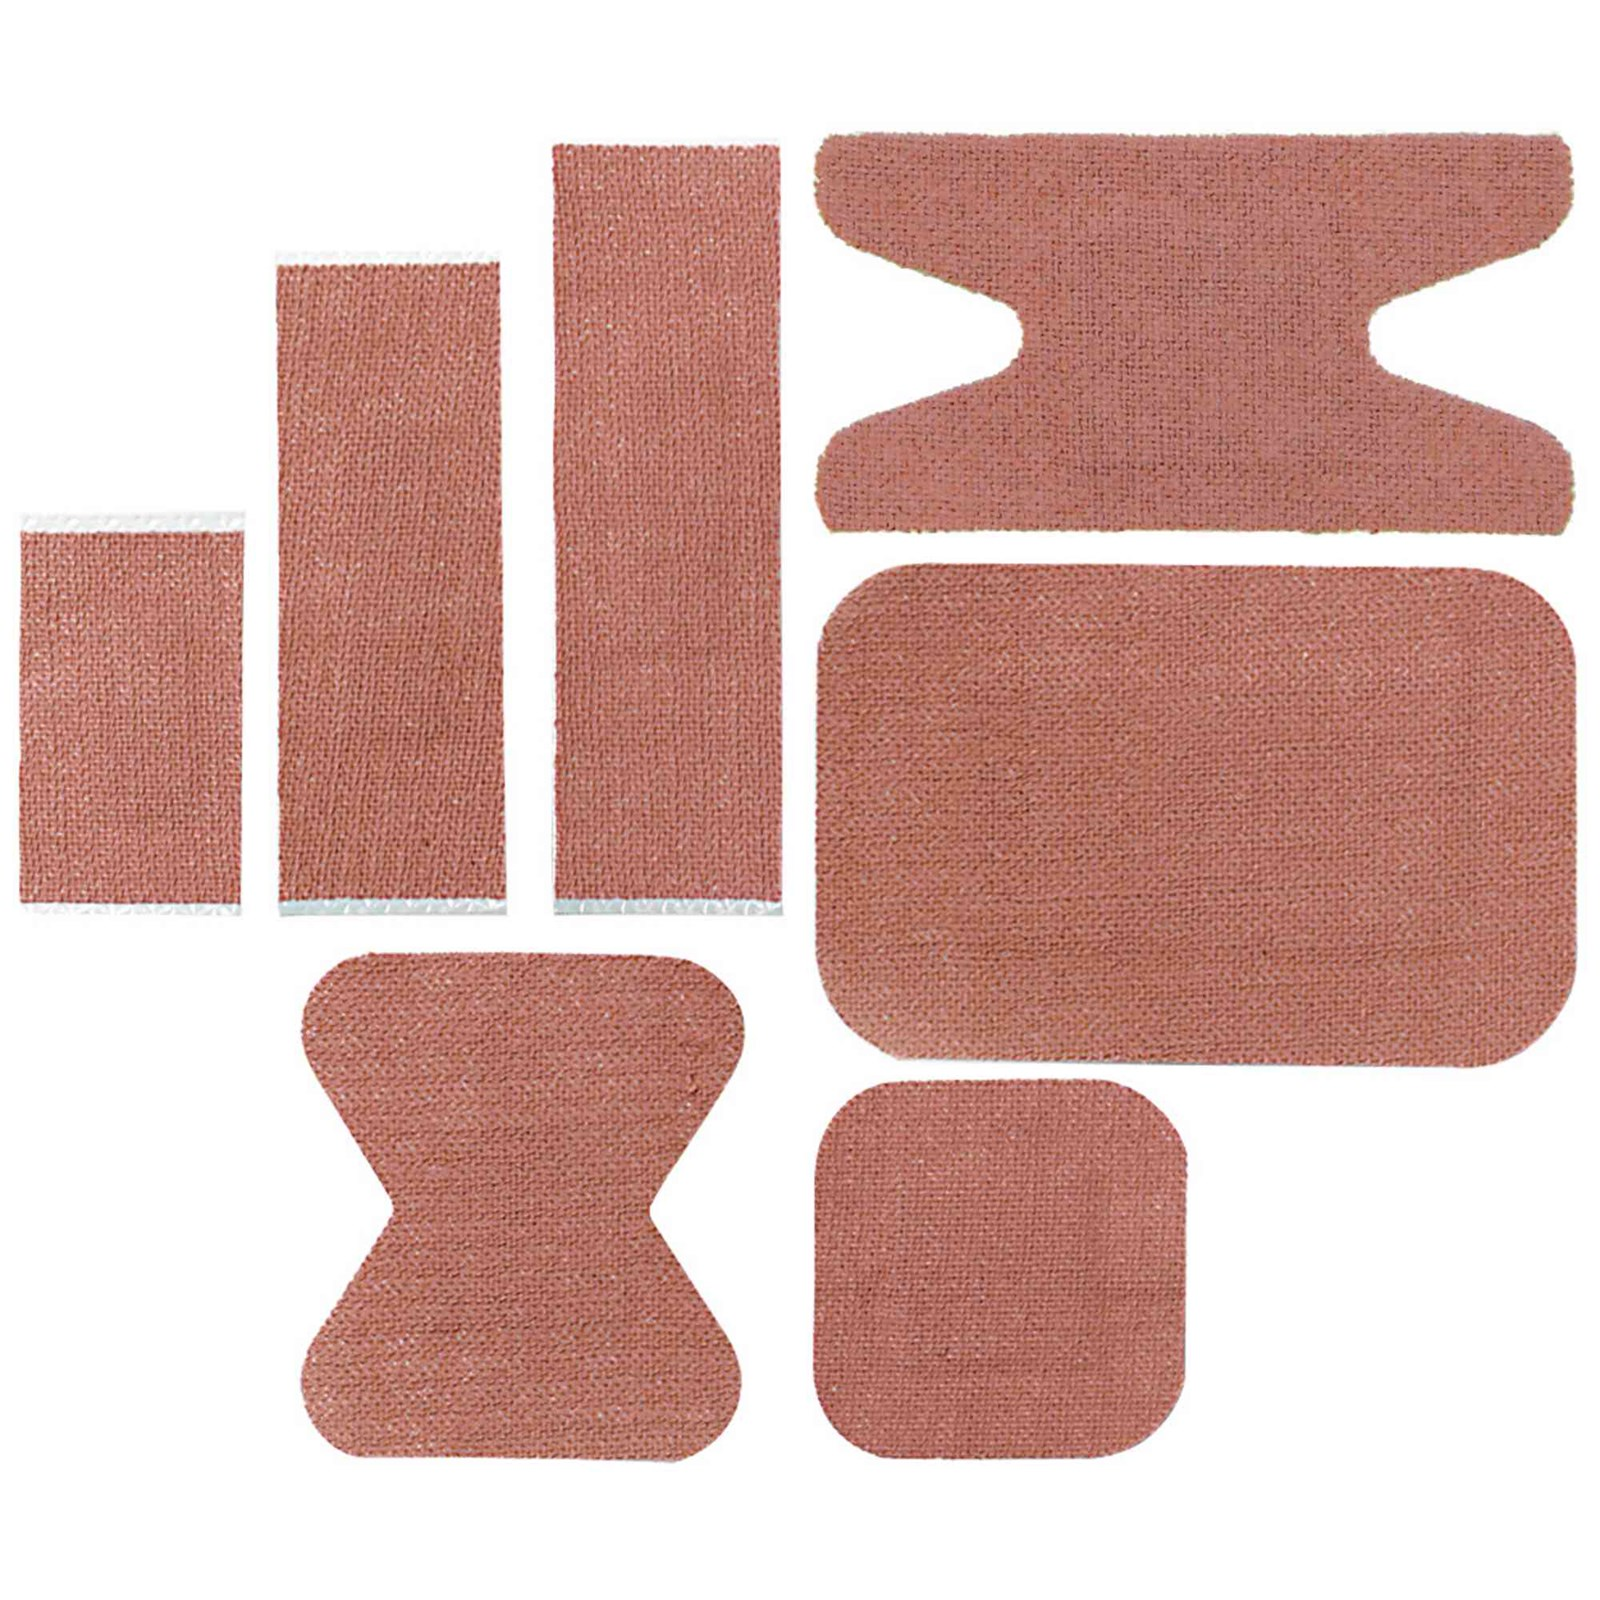 Classic Fabric Plasters - Assorted